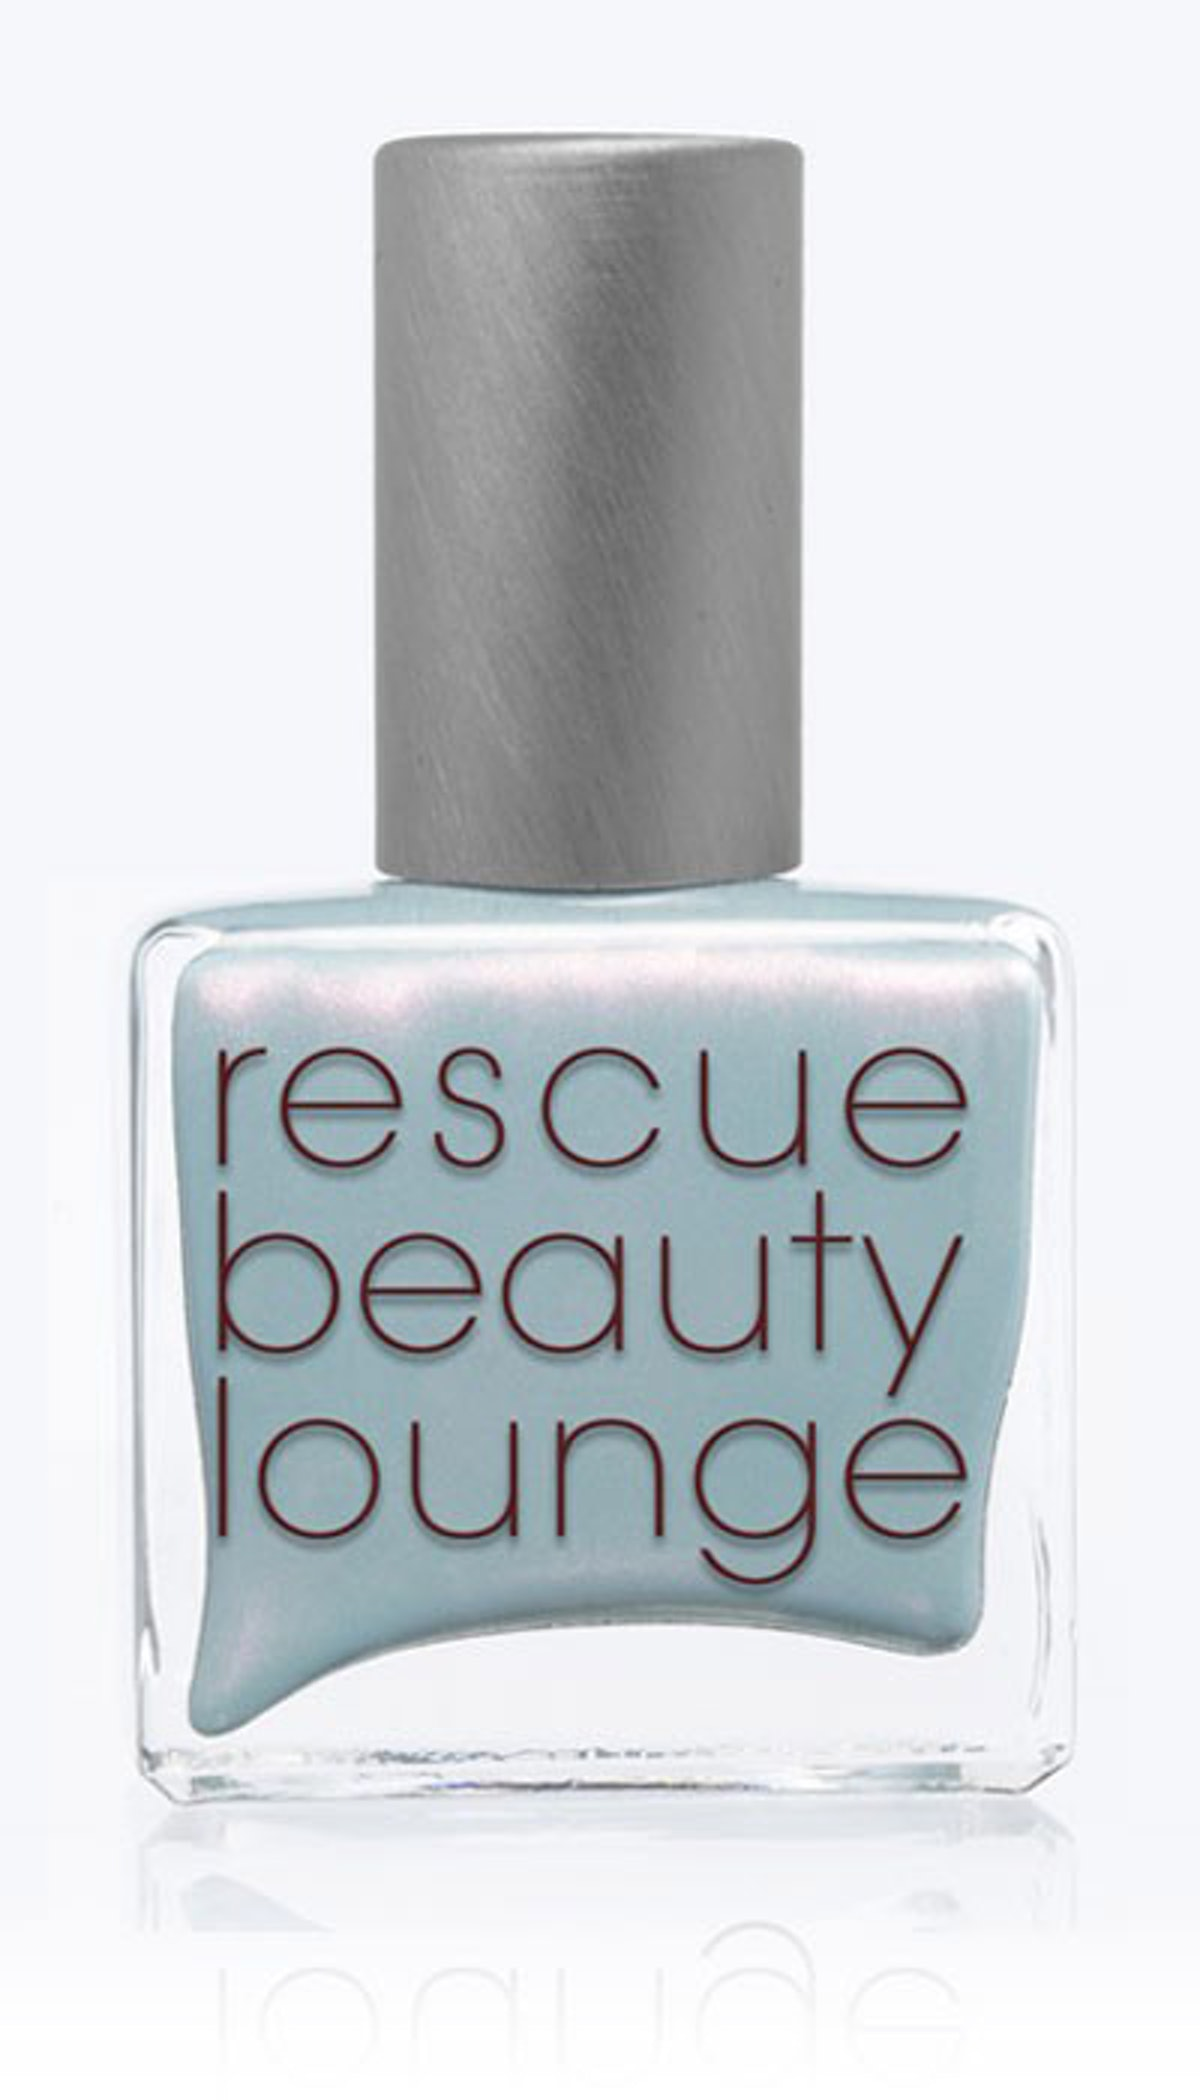 __Rescue Beauty Lounge Nail Polish in Réveillon__ ($20, [rescuebeauty.com](http://www.rescuebeauty.com/index.php/revellion.html)): This icy blue- gray is the ideal counterpoint to Herrera's warm citrus ensemble.